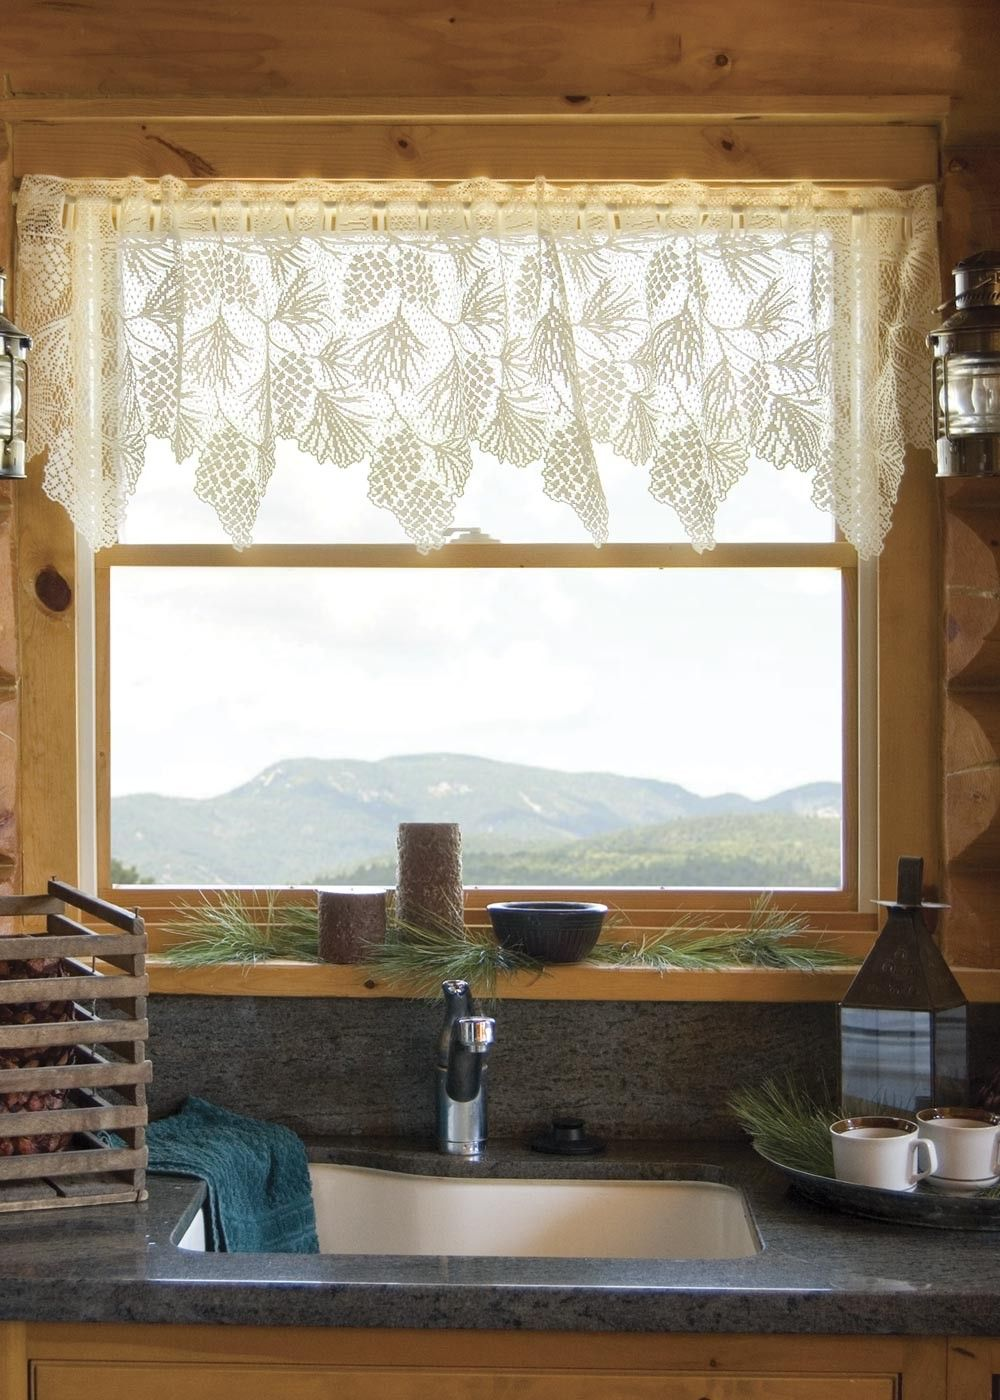 Woodland lace valance curtain by heritage lace | Log home kitchen ...